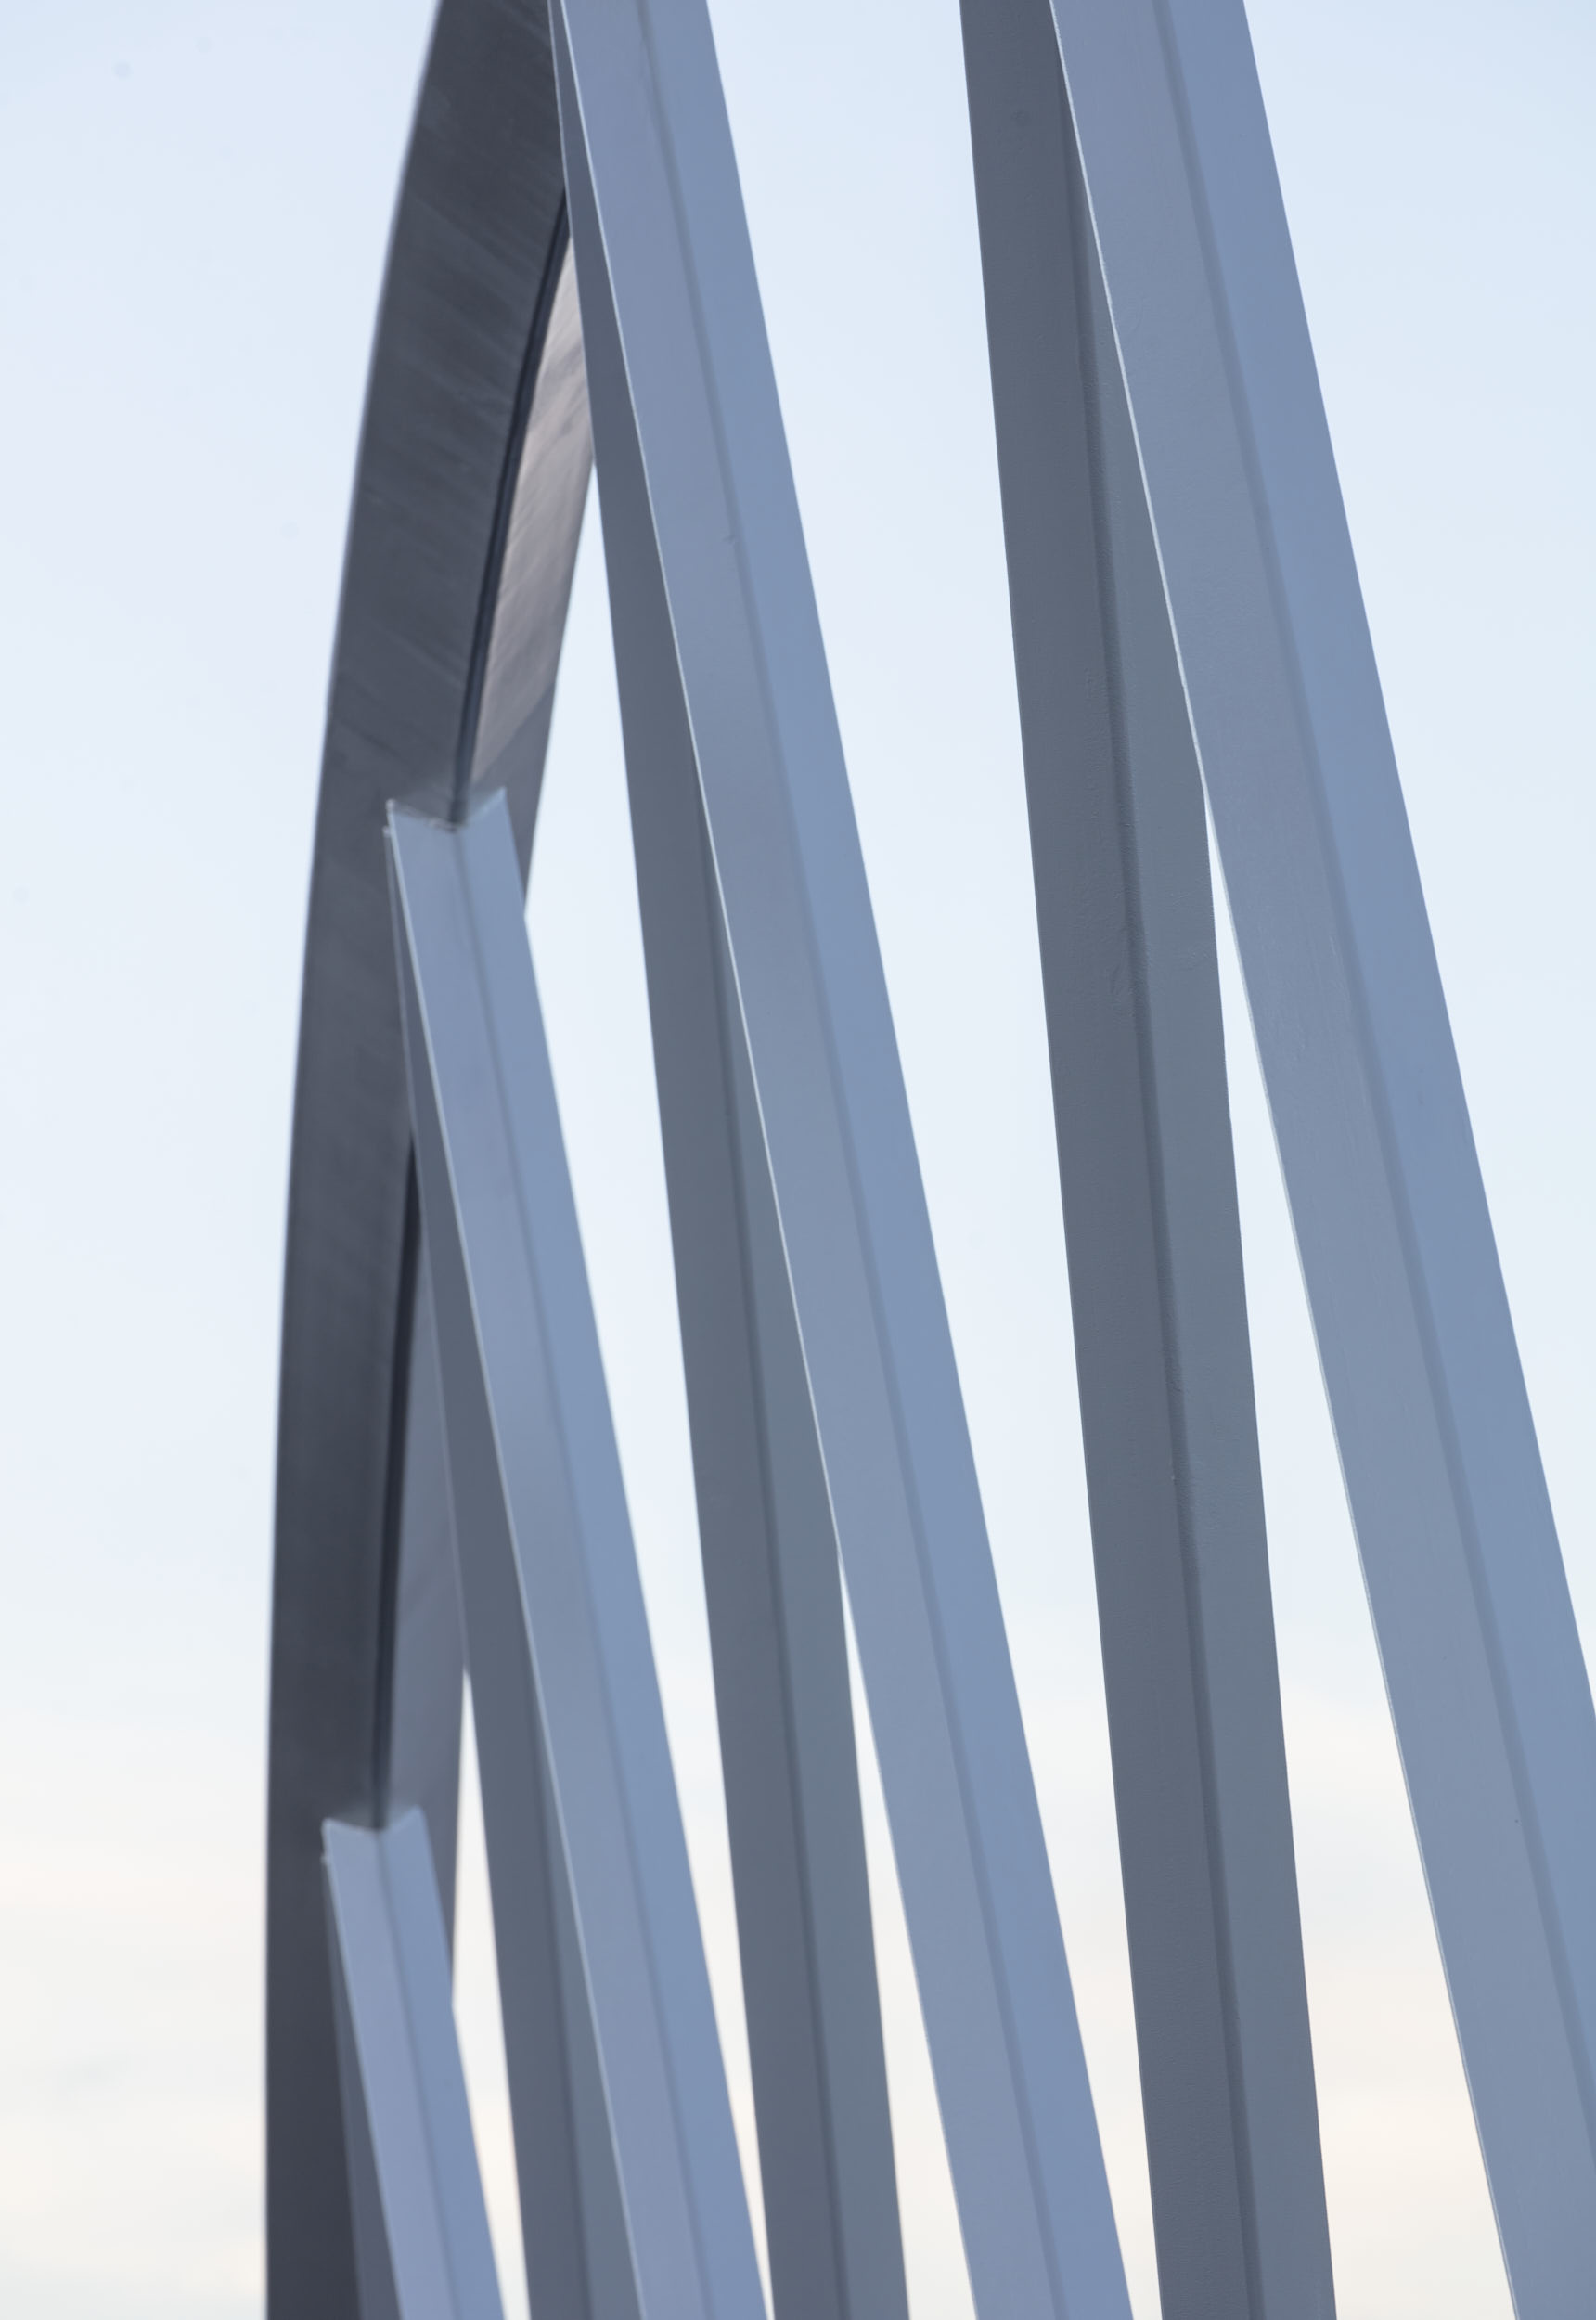 Prefabricated steel detailing photograph.